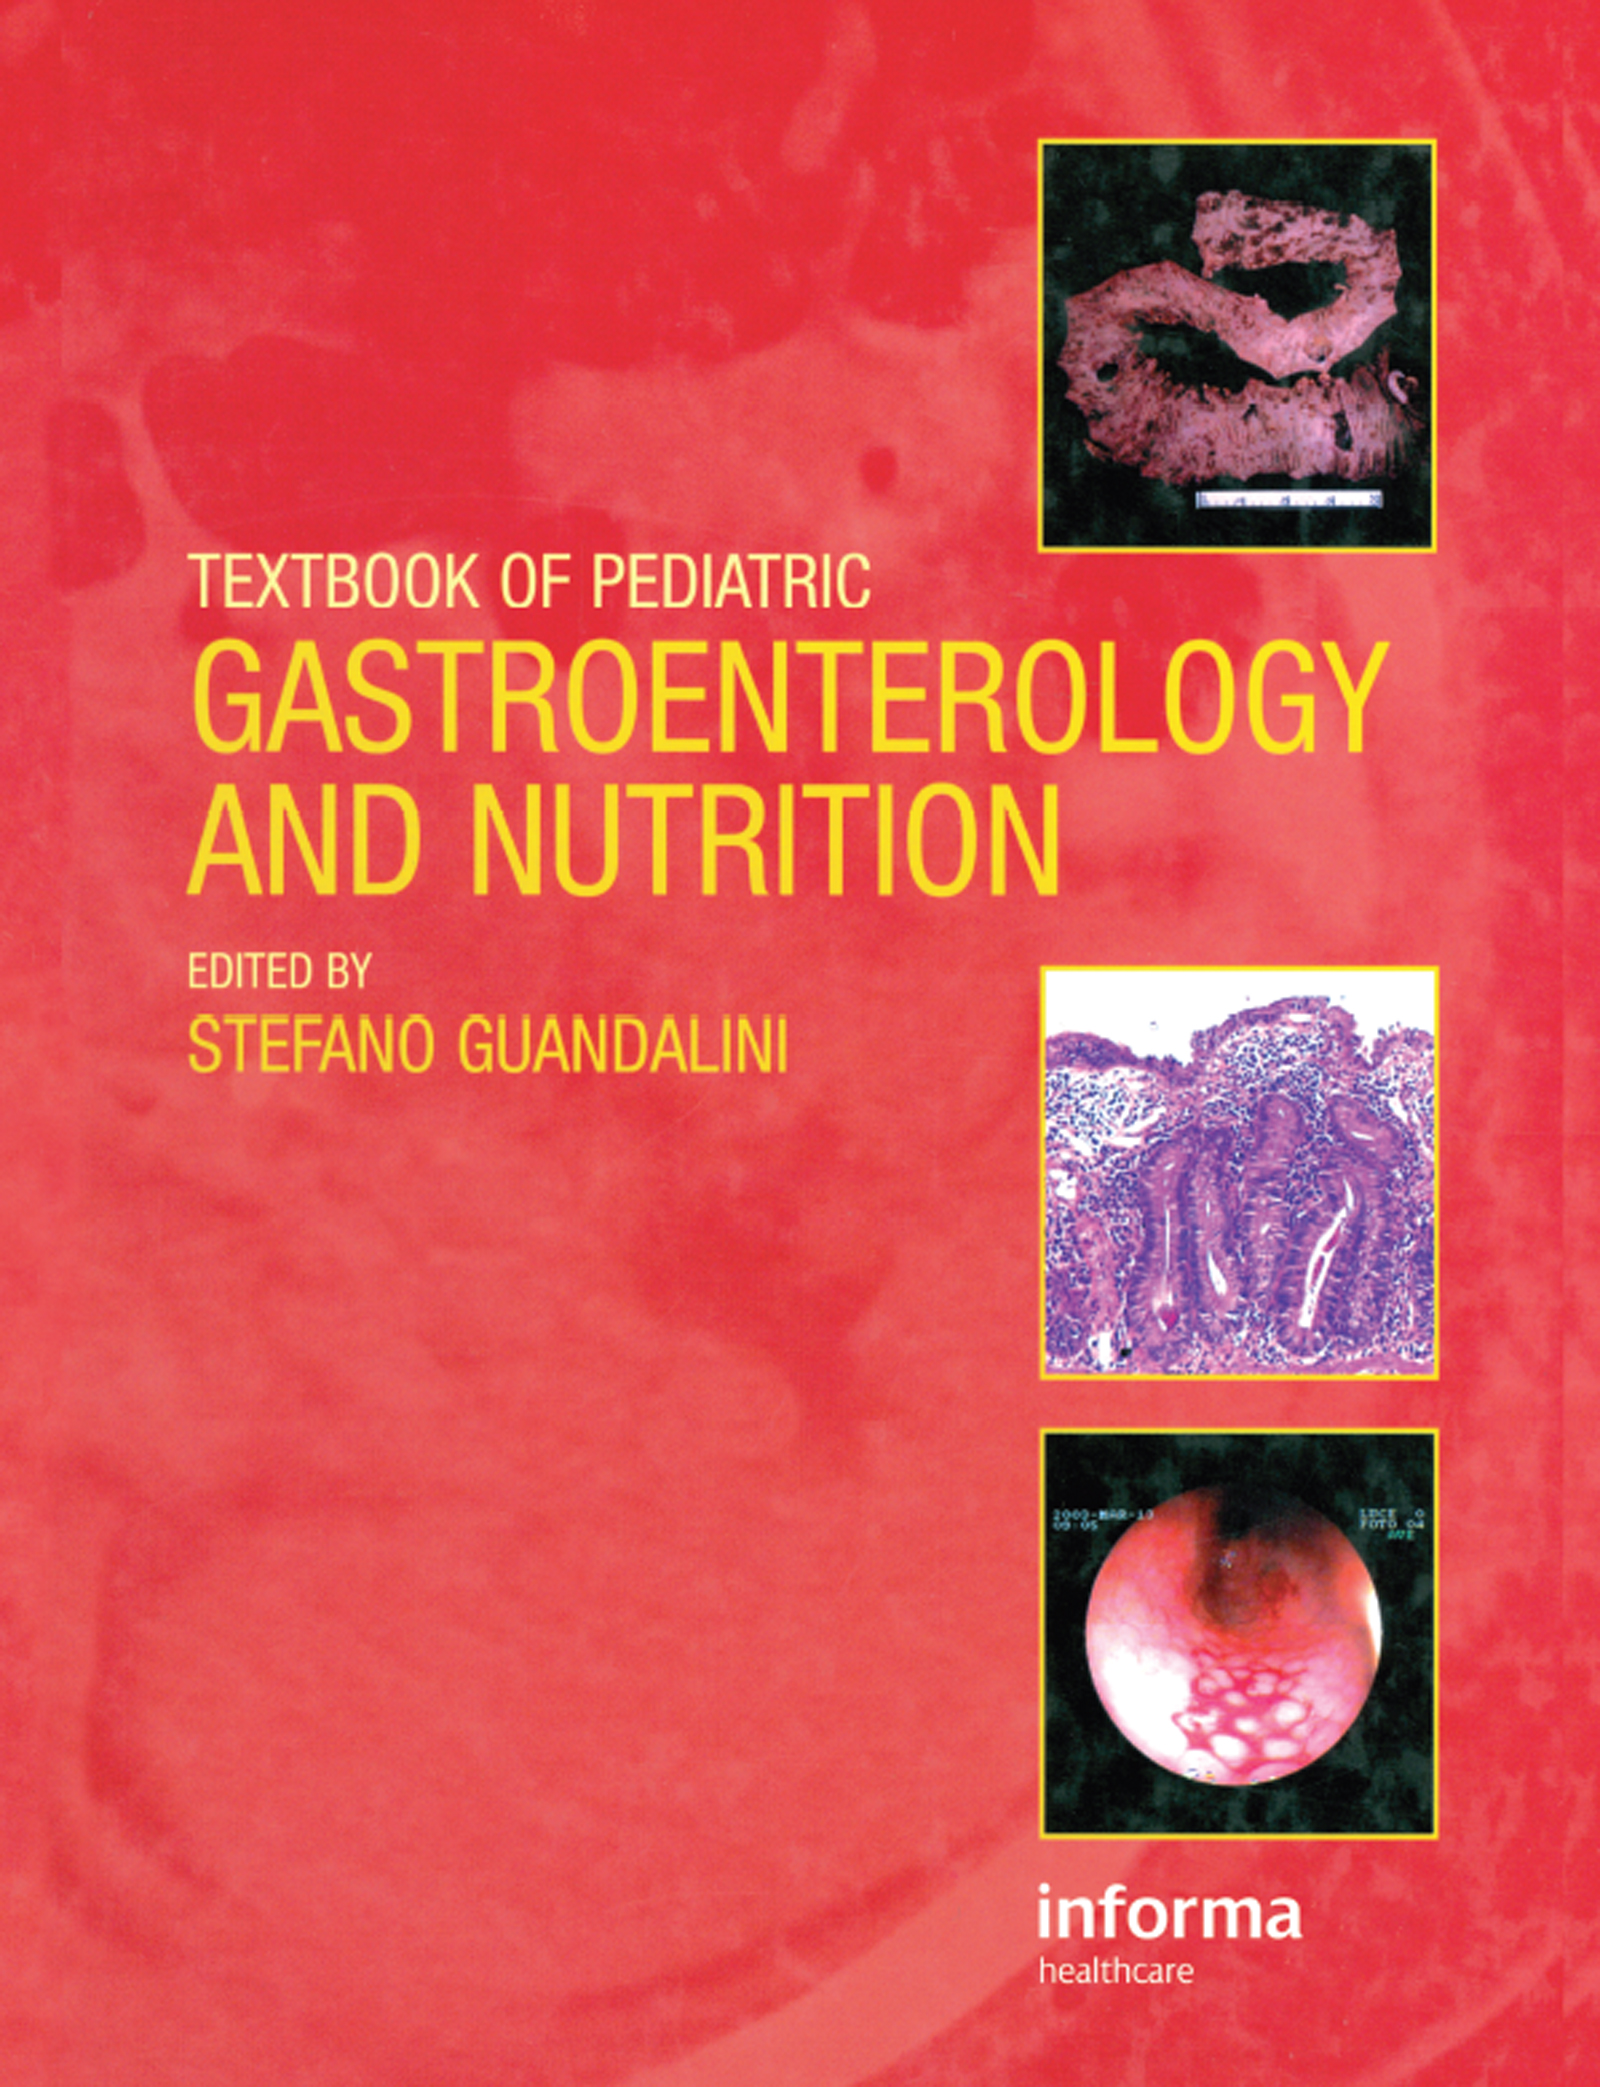 Textbook of Pediatric Gastroenterology and Nutrition